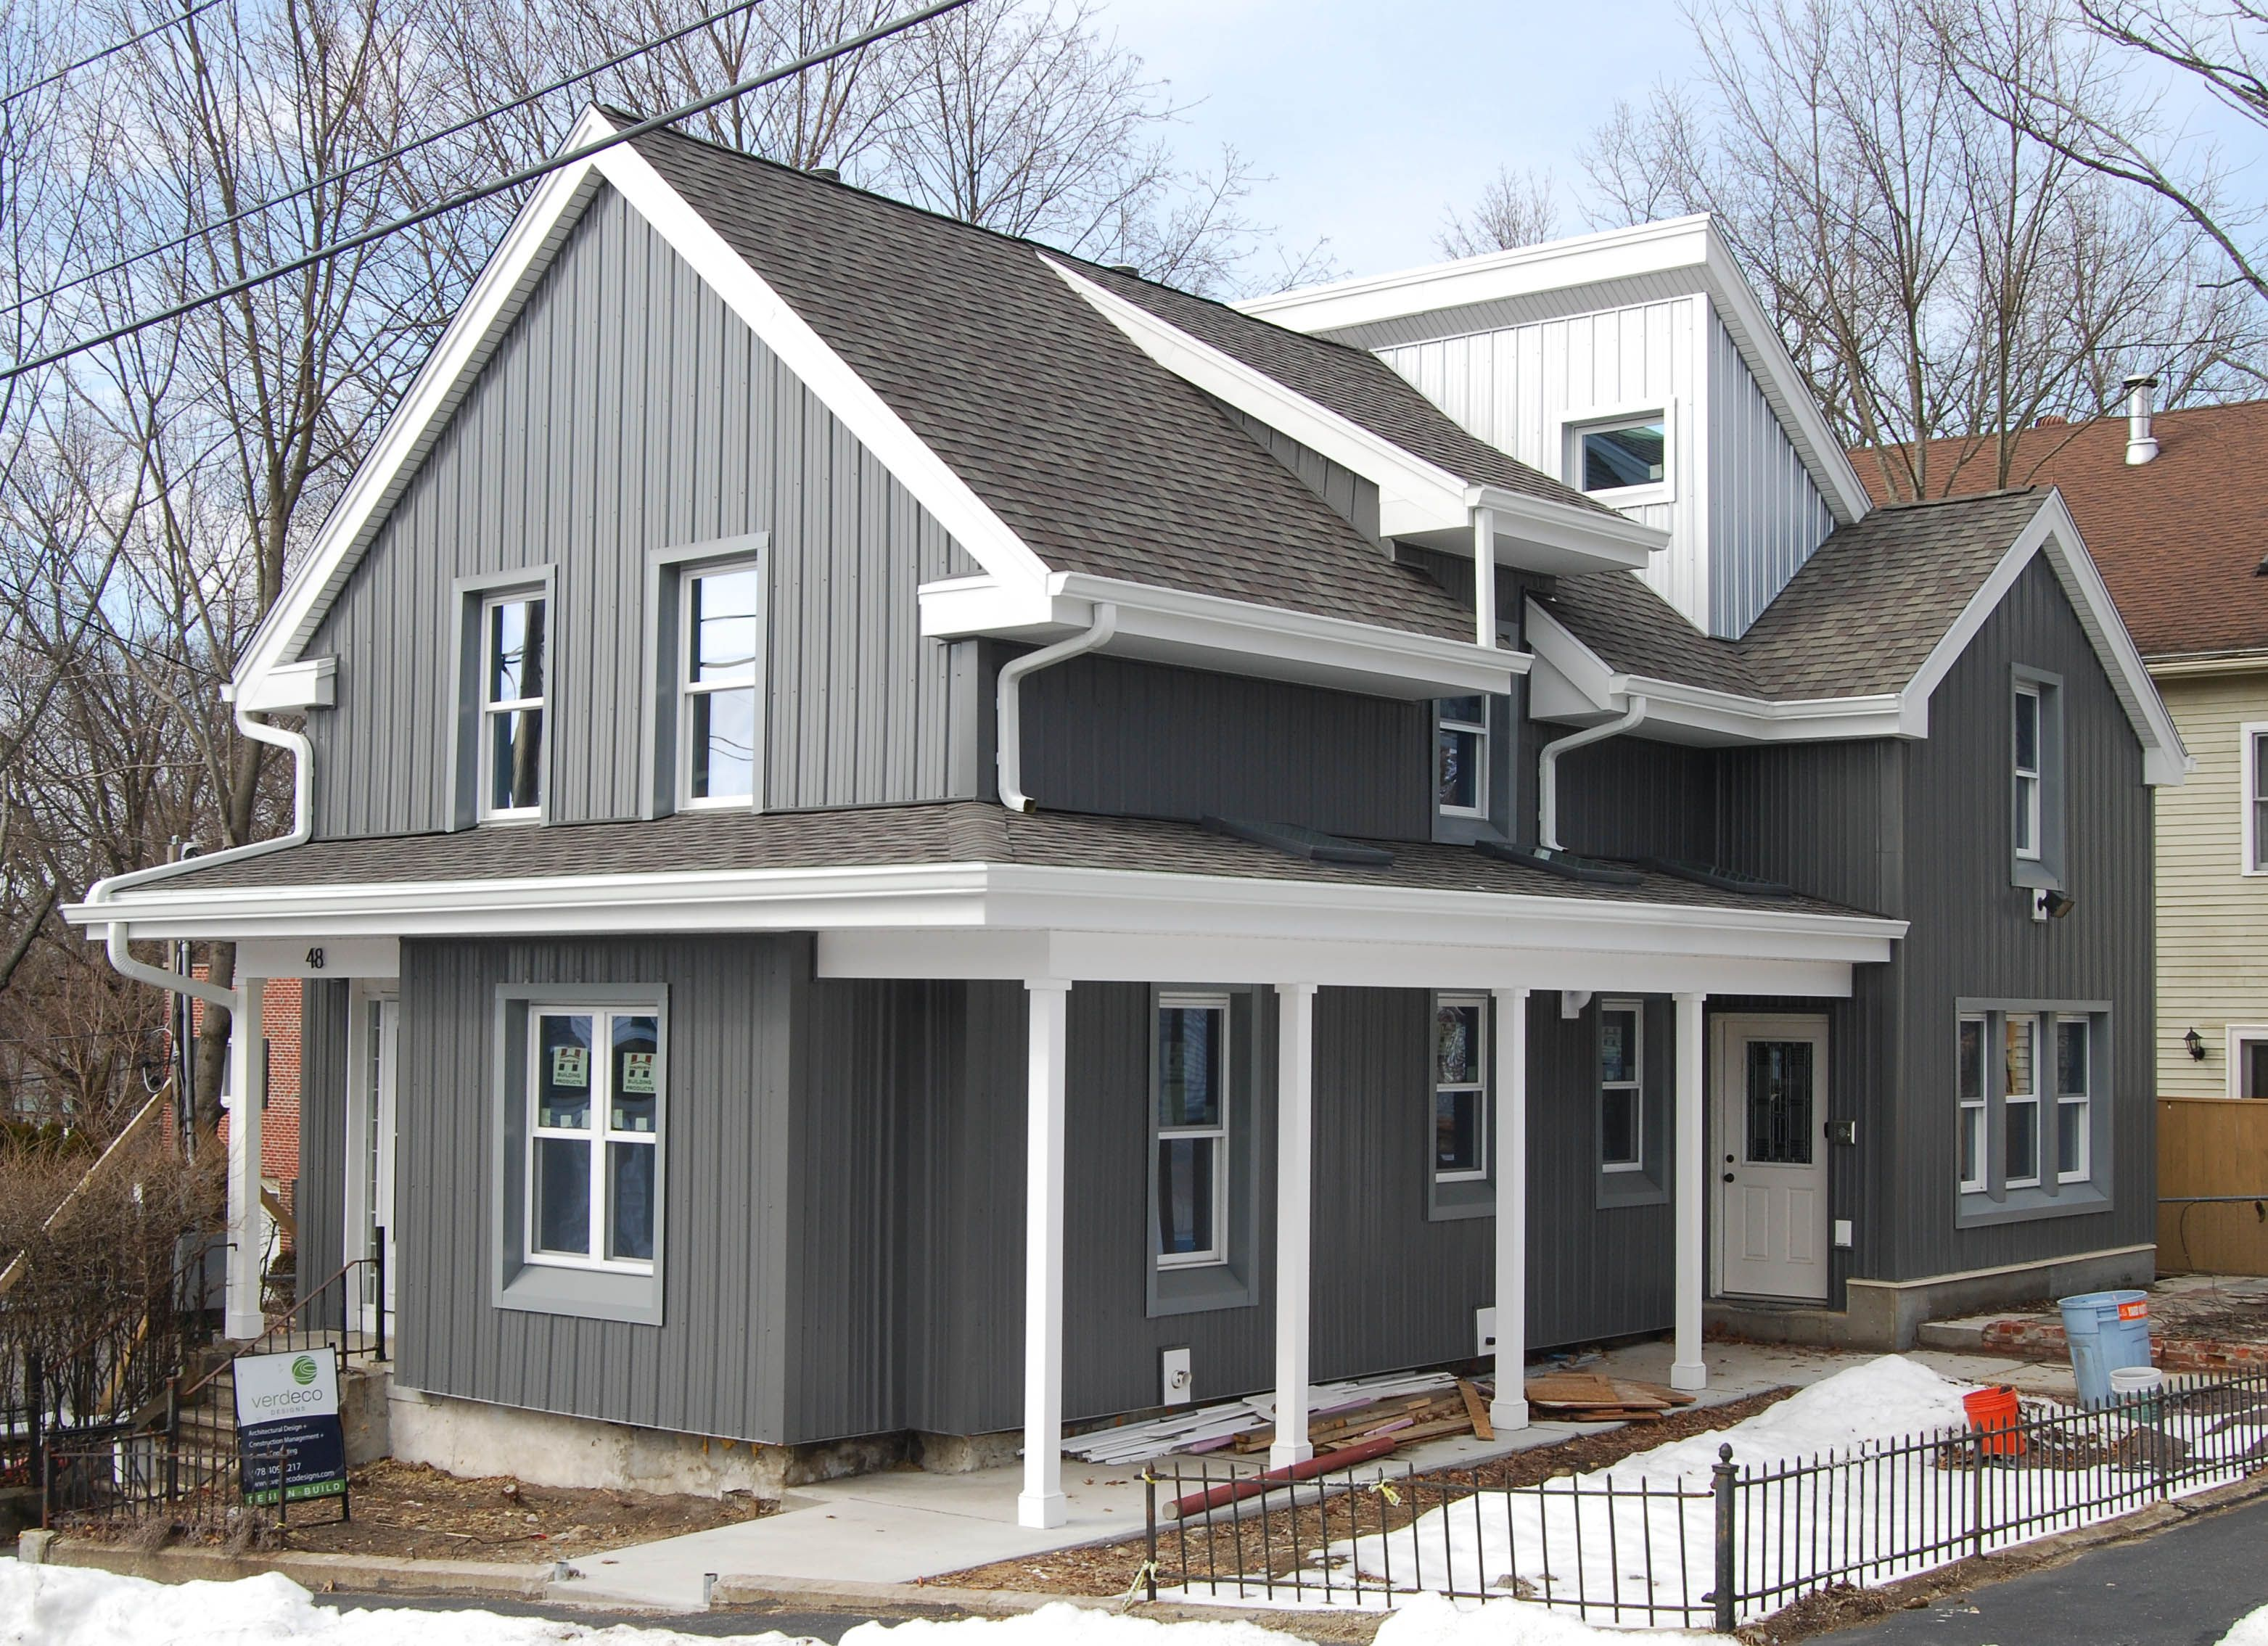 Houses With Metal Siding Google Search Metal Siding House